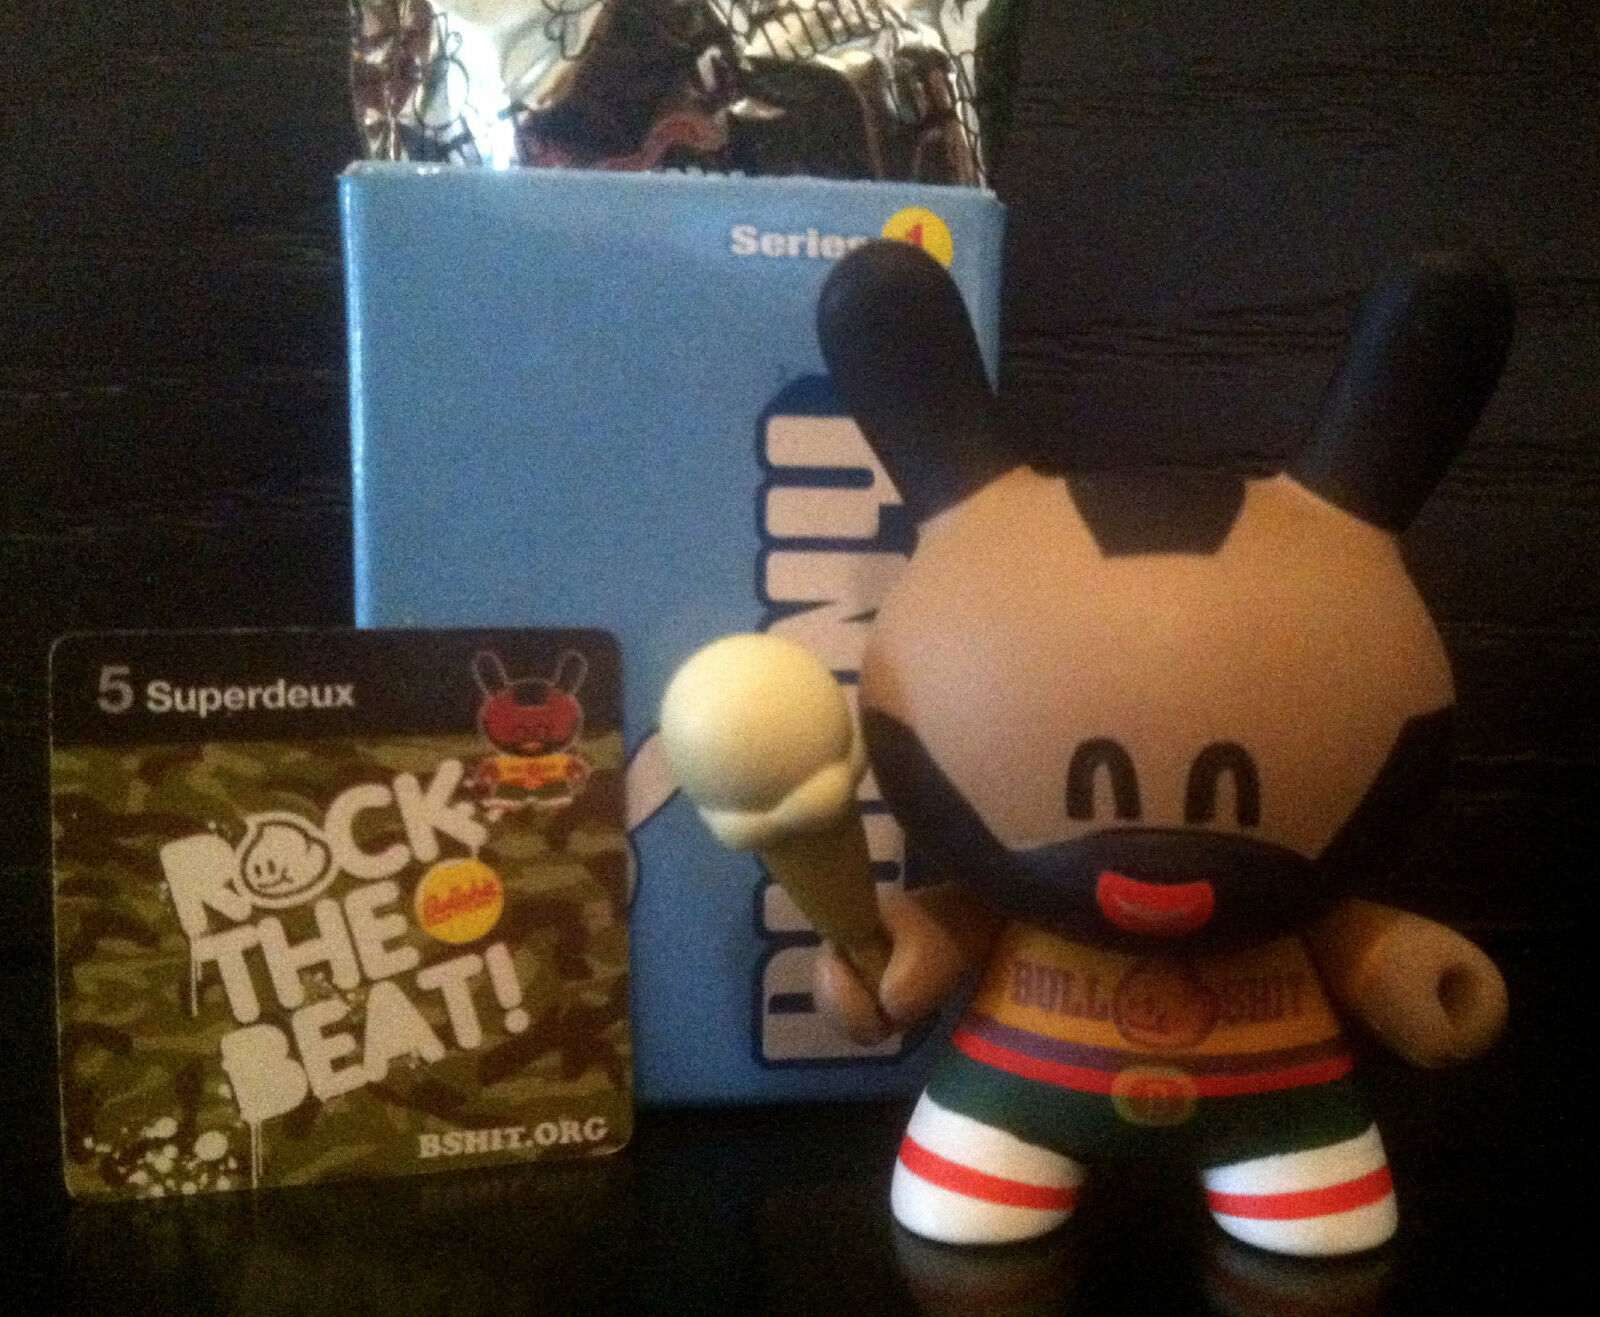 DUNNY DUNNY DUNNY 3  SERIES 1 SUPERDEUX ICE CREAM CONE 1 12 KIDROBOT 2004 COLLECTIBLE TOY 8f5baa